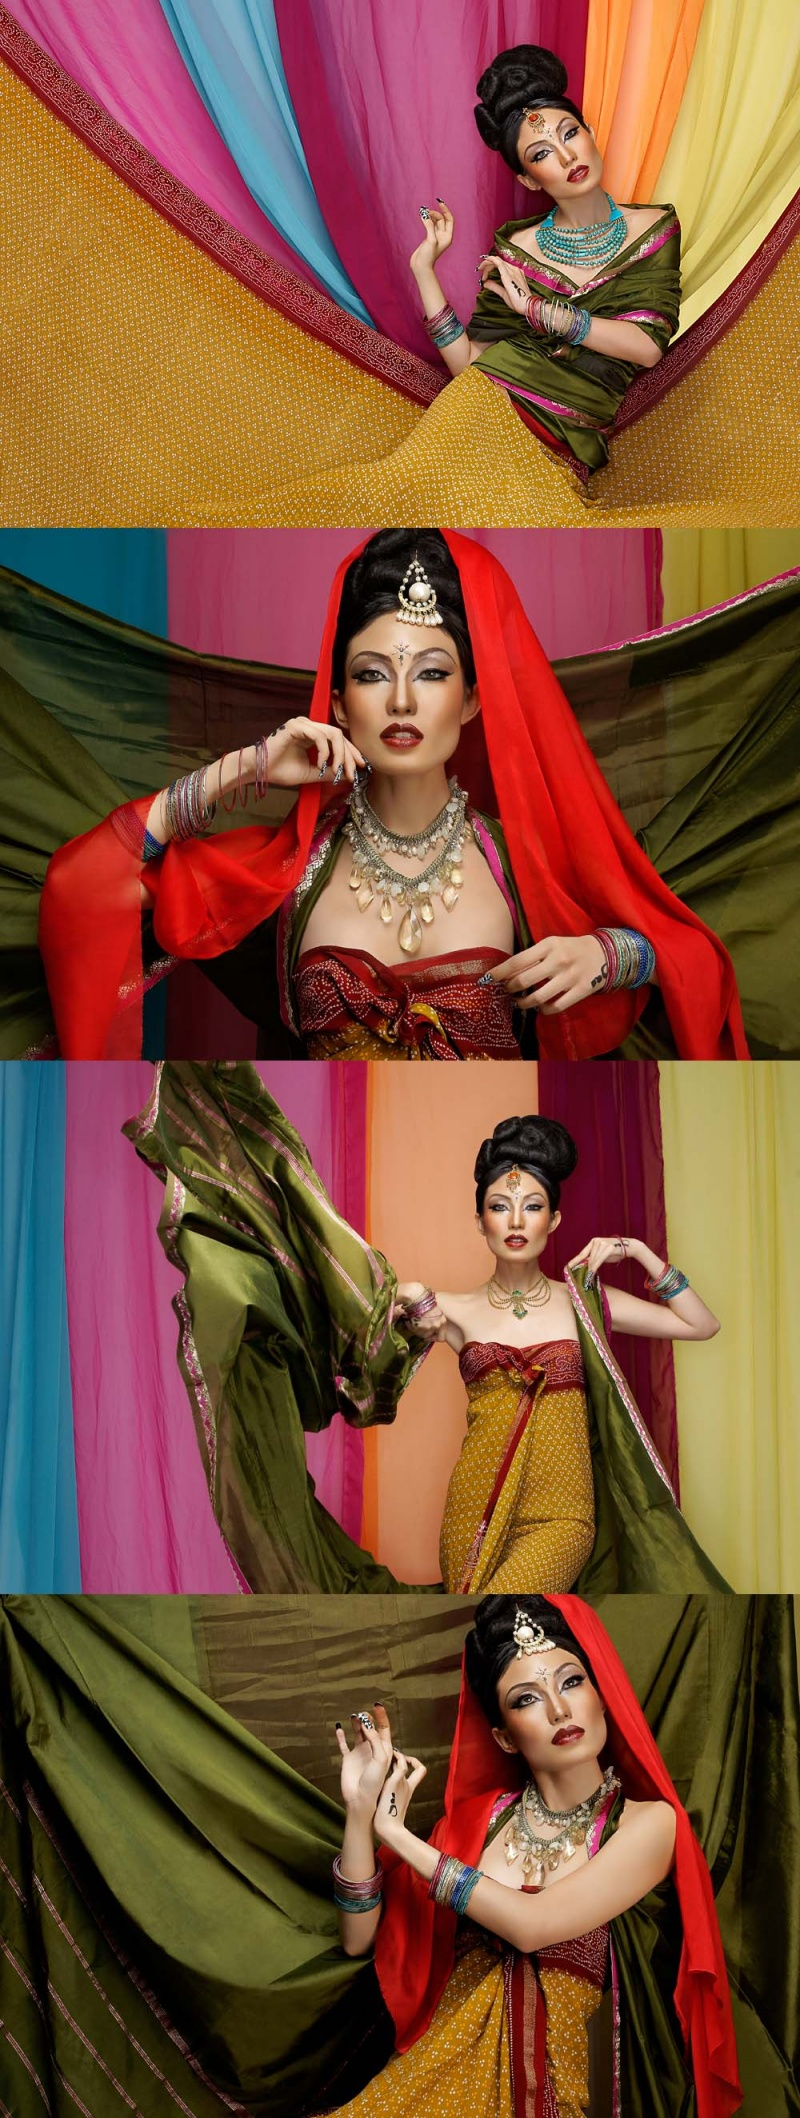 Indonesia Aug 08, 2008 Dan Santoso 2008 BollyWood. Swank Glossy. Styled by Kesha Moedz. Make up & Hair by Adrian